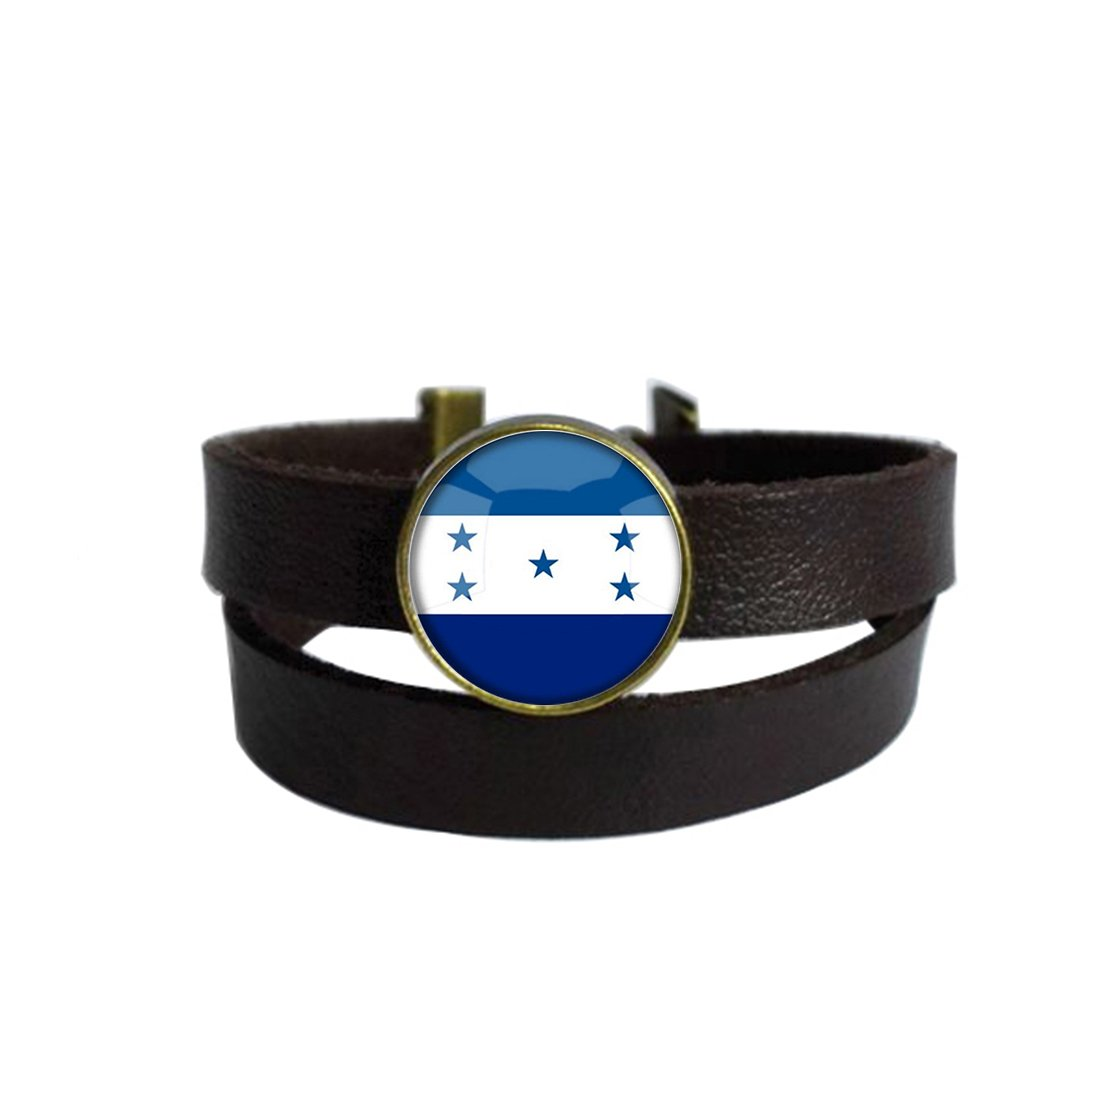 LooPoP Vintage Punk Dark Brown Leather Bracelet The Republic Of Honduras National Flag Belt Wrap Cuff Bangle Adjustable